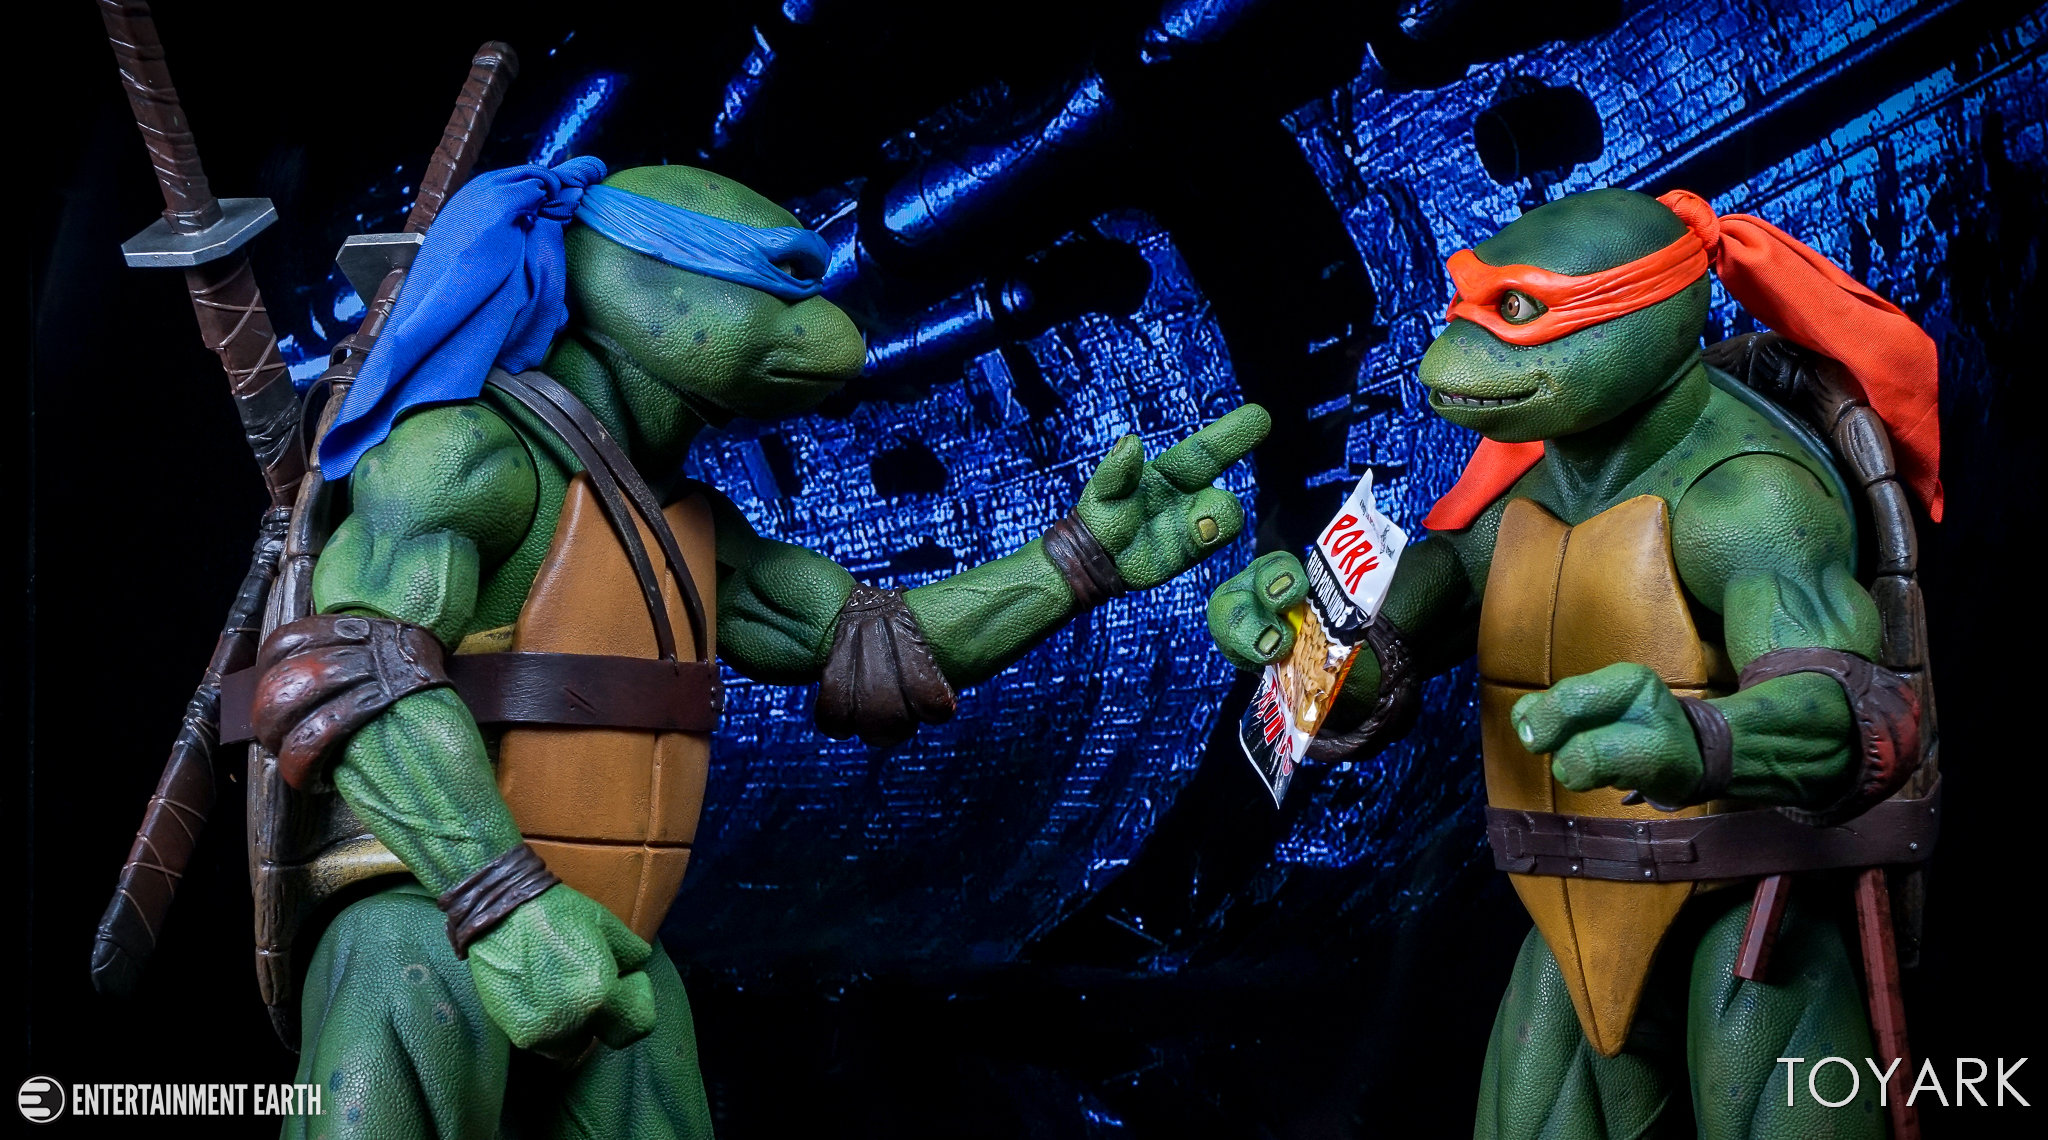 http://news.toyark.com/wp-content/uploads/sites/4/2017/10/NECA-Quarter-Scale-TMNT-Michelangelo-030.jpg